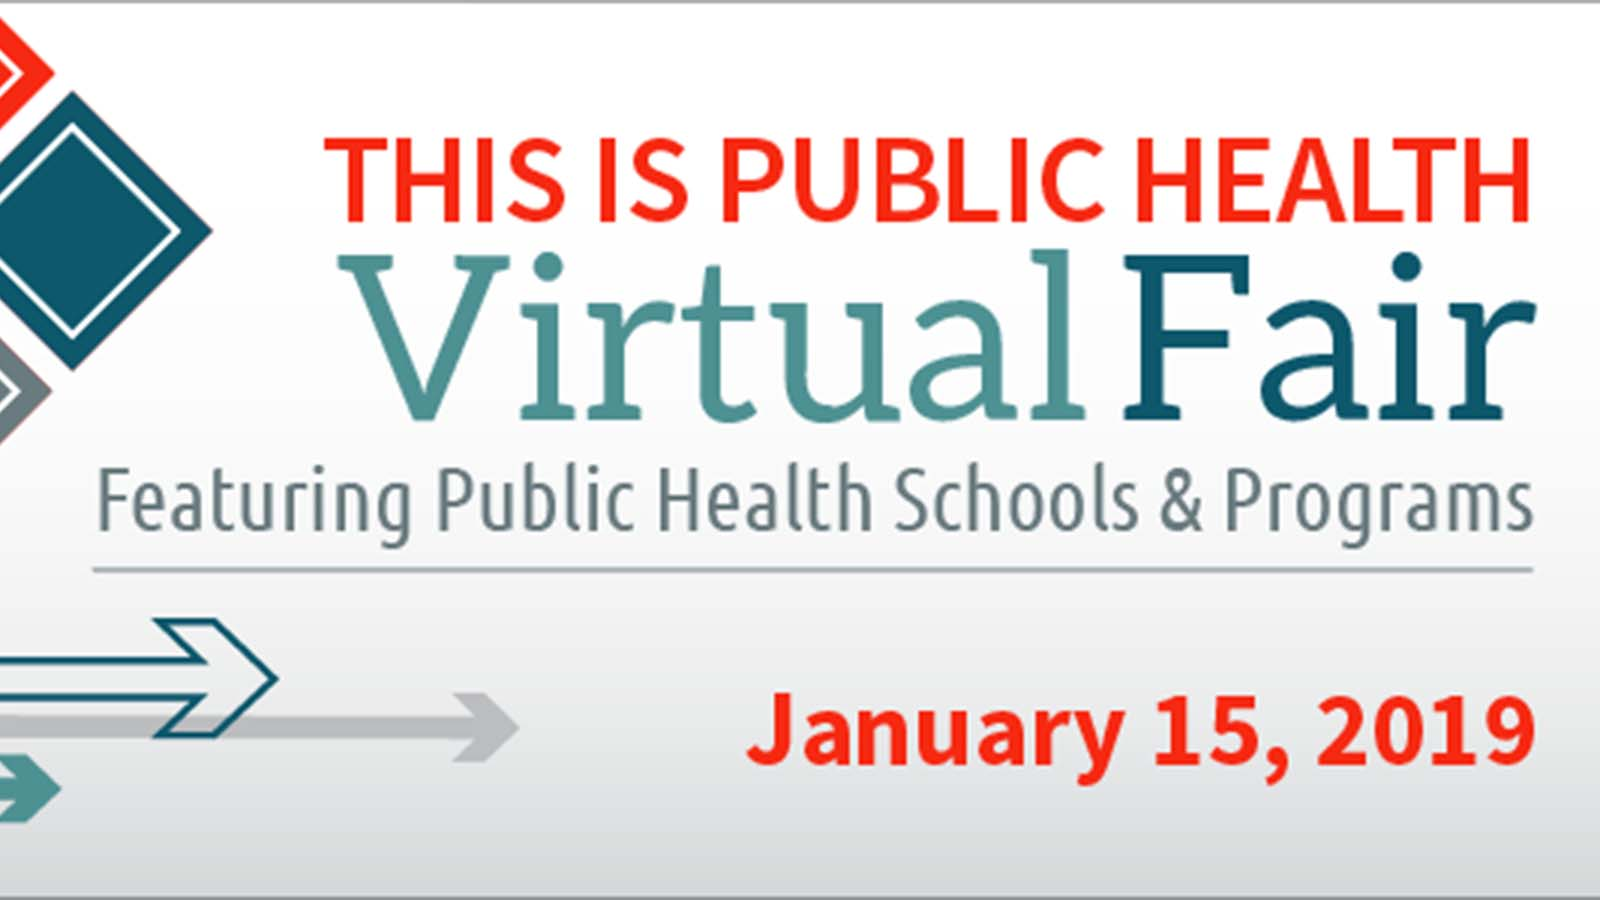 Details For Event 15577 – This is Public Health Virtual Fair